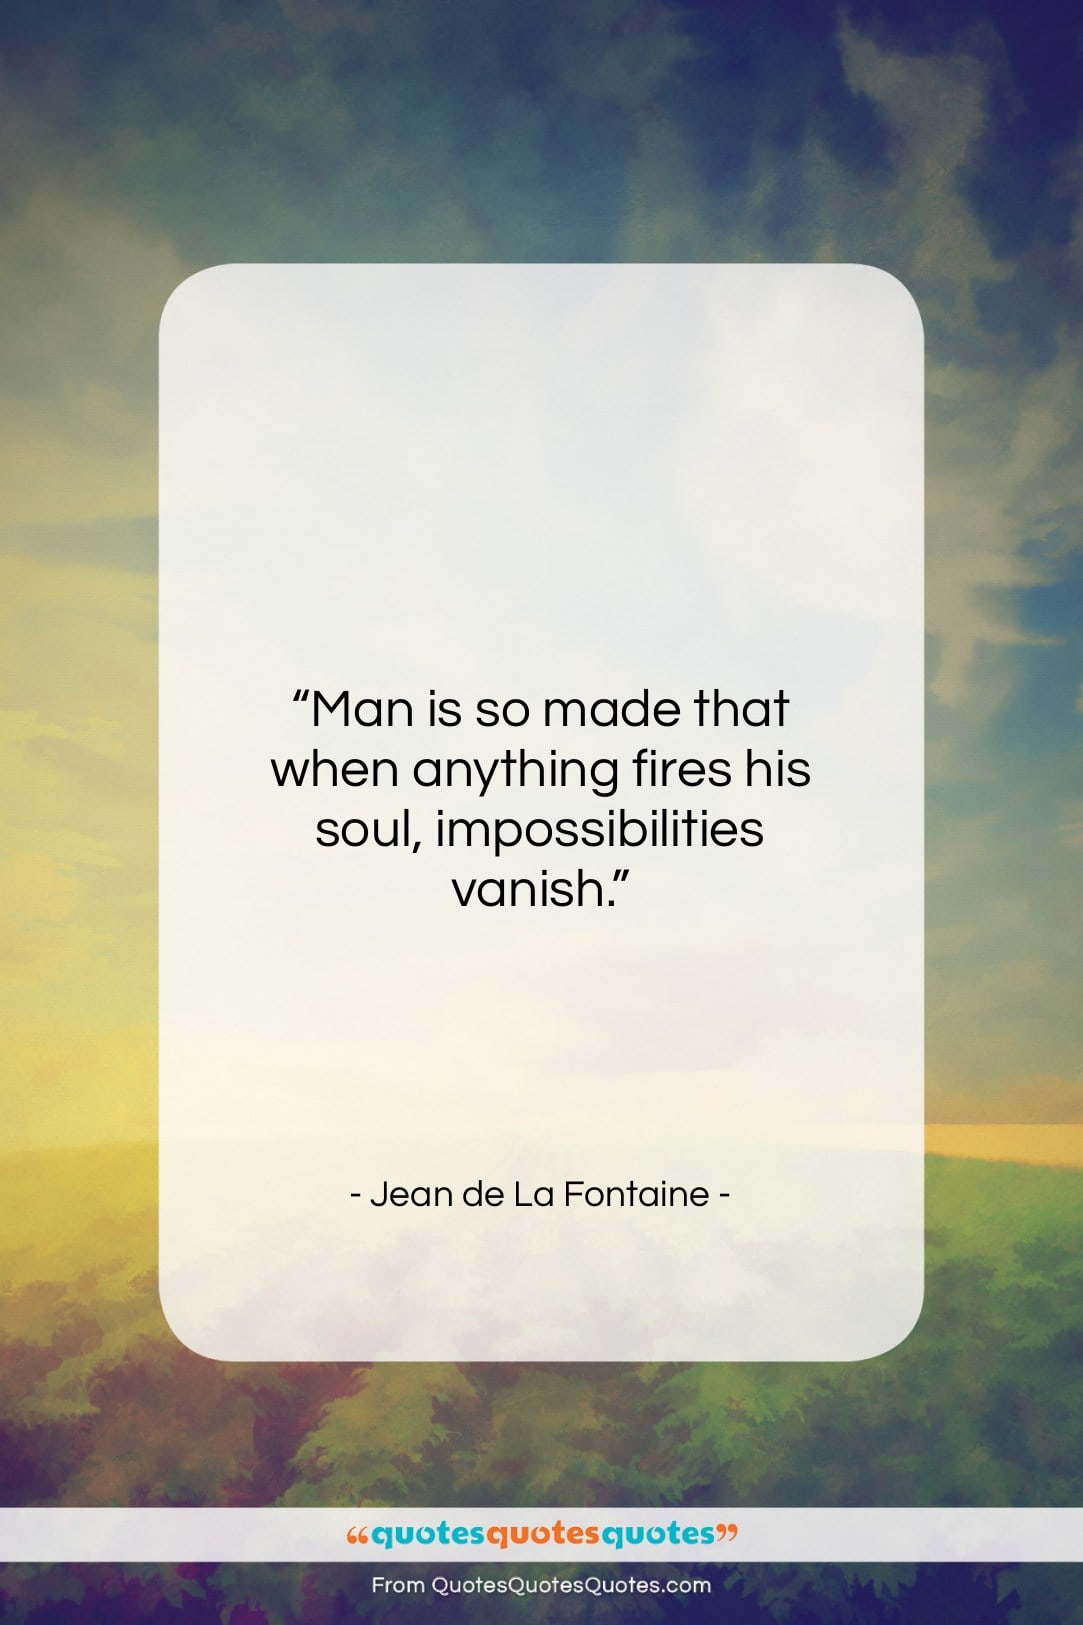 """Jean de La Fontaine quote: """"Man is so made that when anything…""""- at QuotesQuotesQuotes.com"""